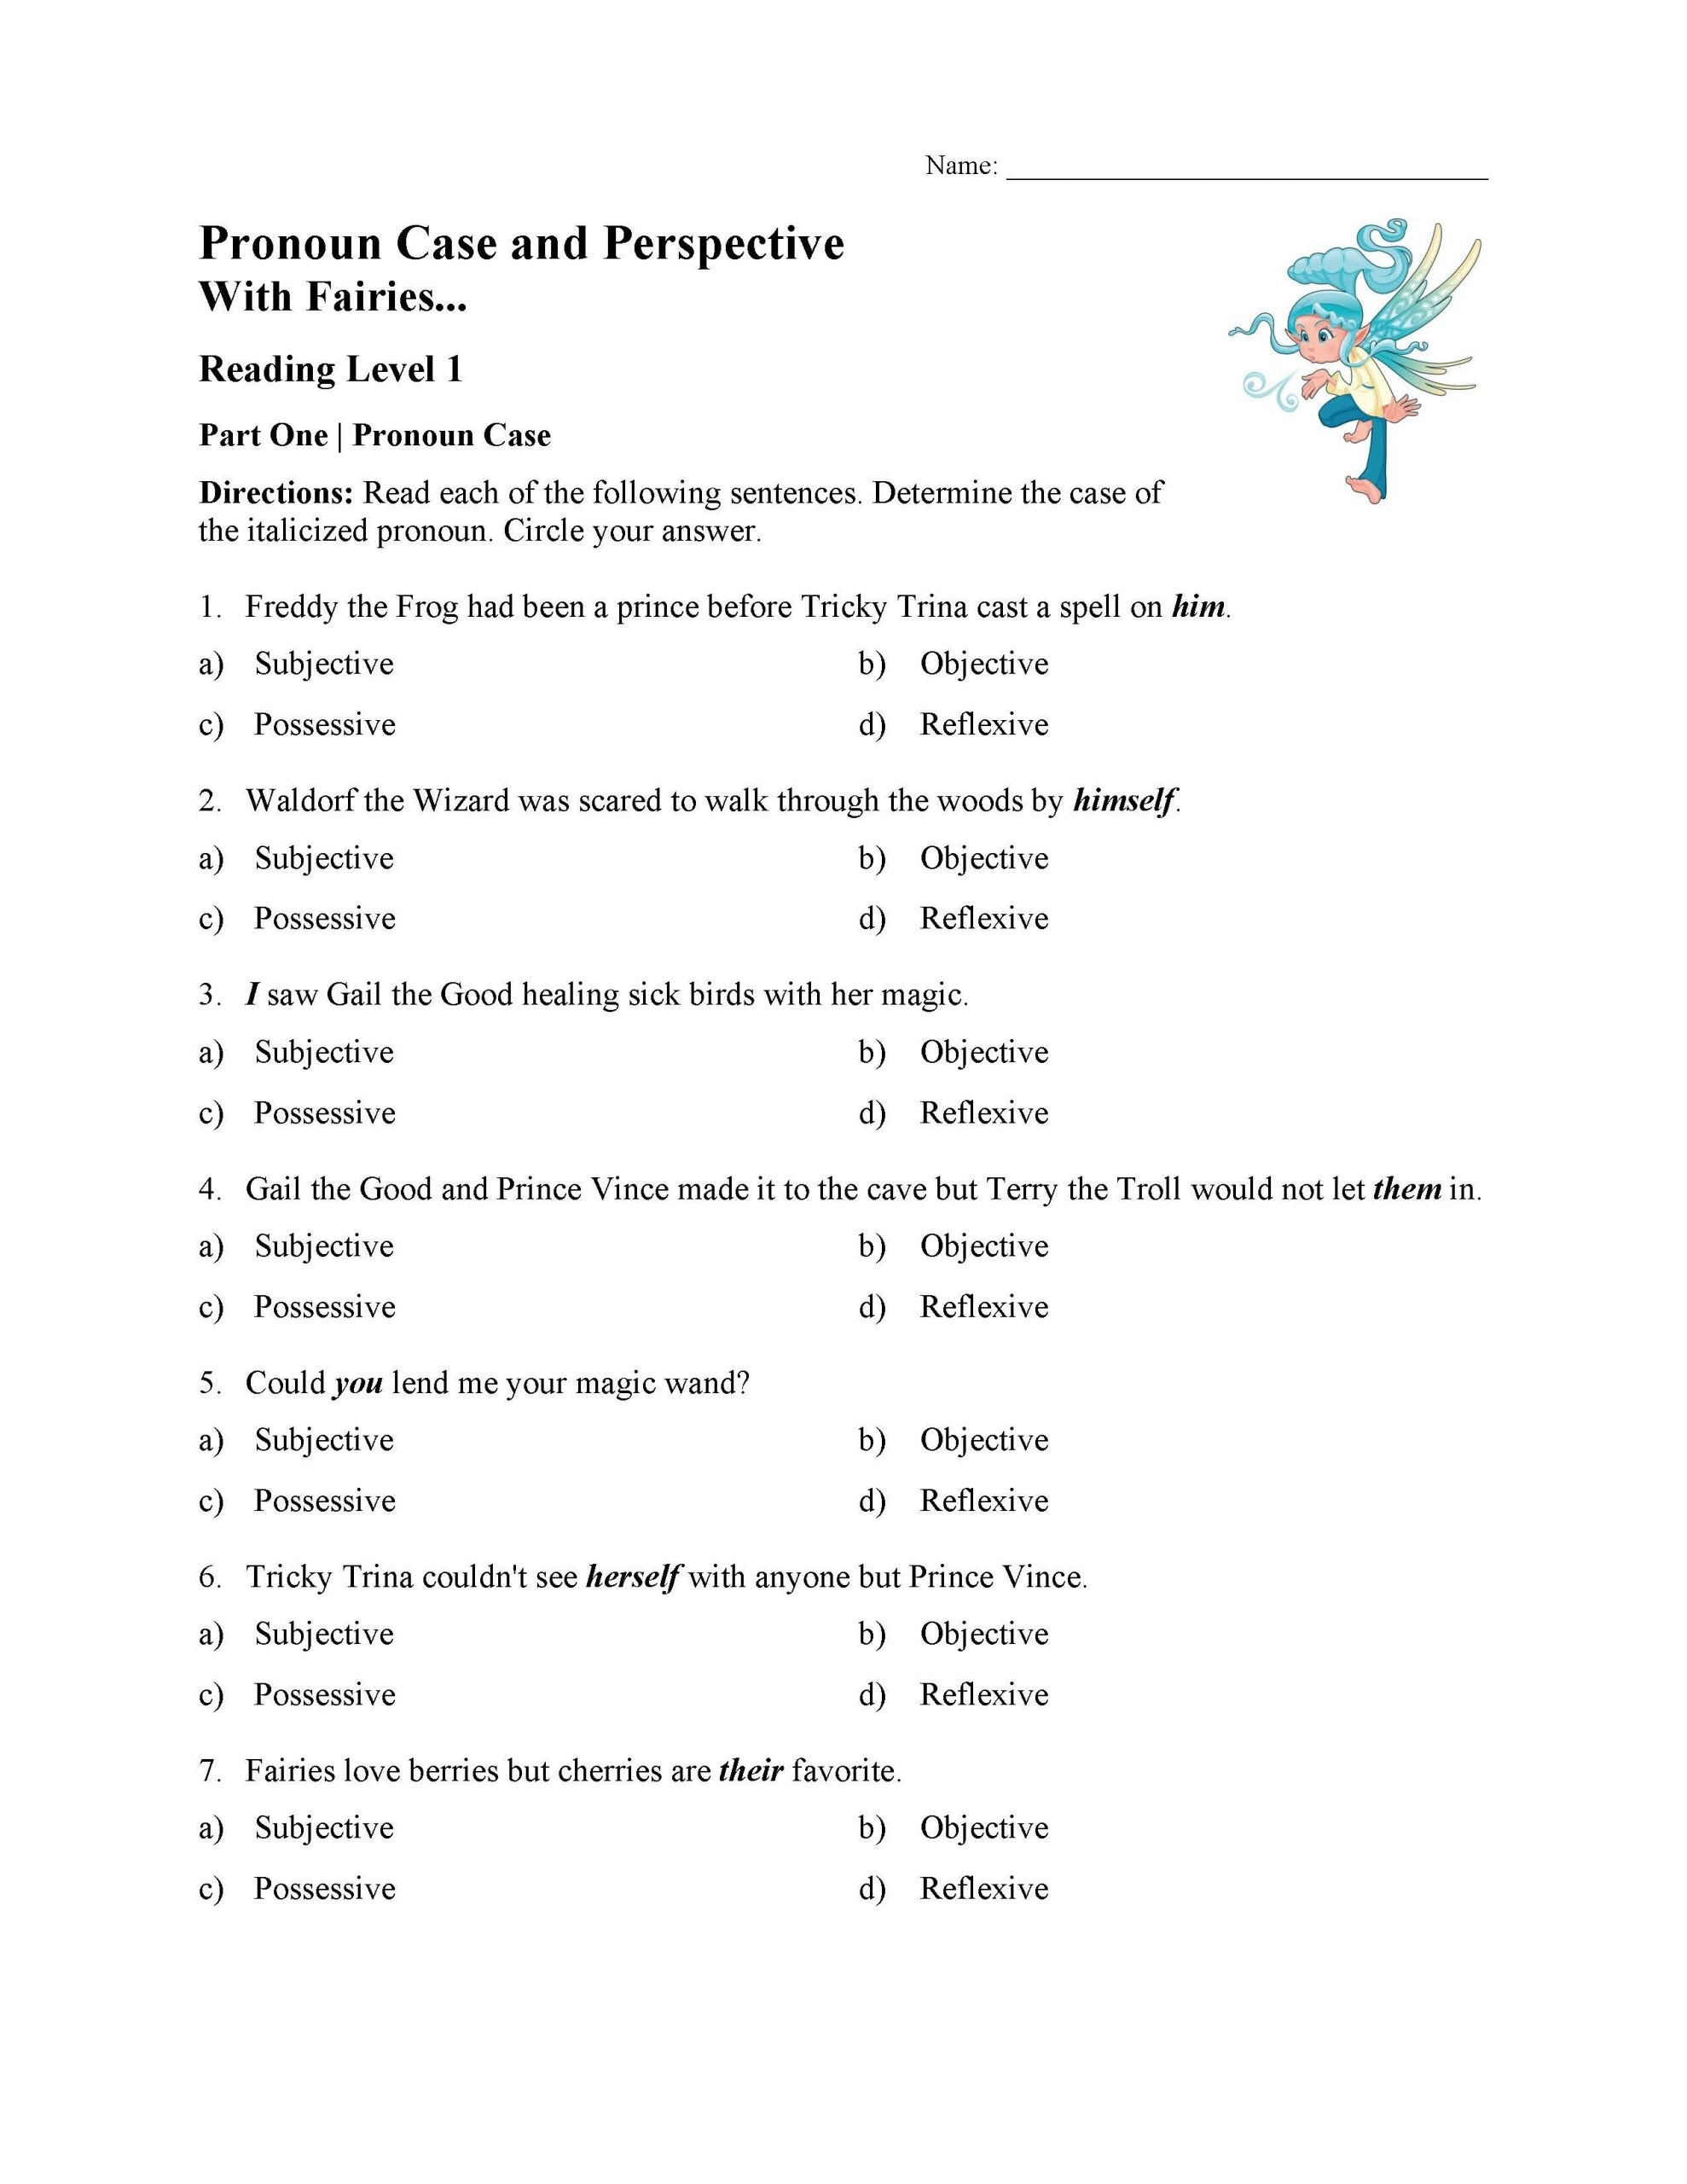 Pronouns Worksheets 5th Grade Pronoun Case and Perspective Test with Fairies